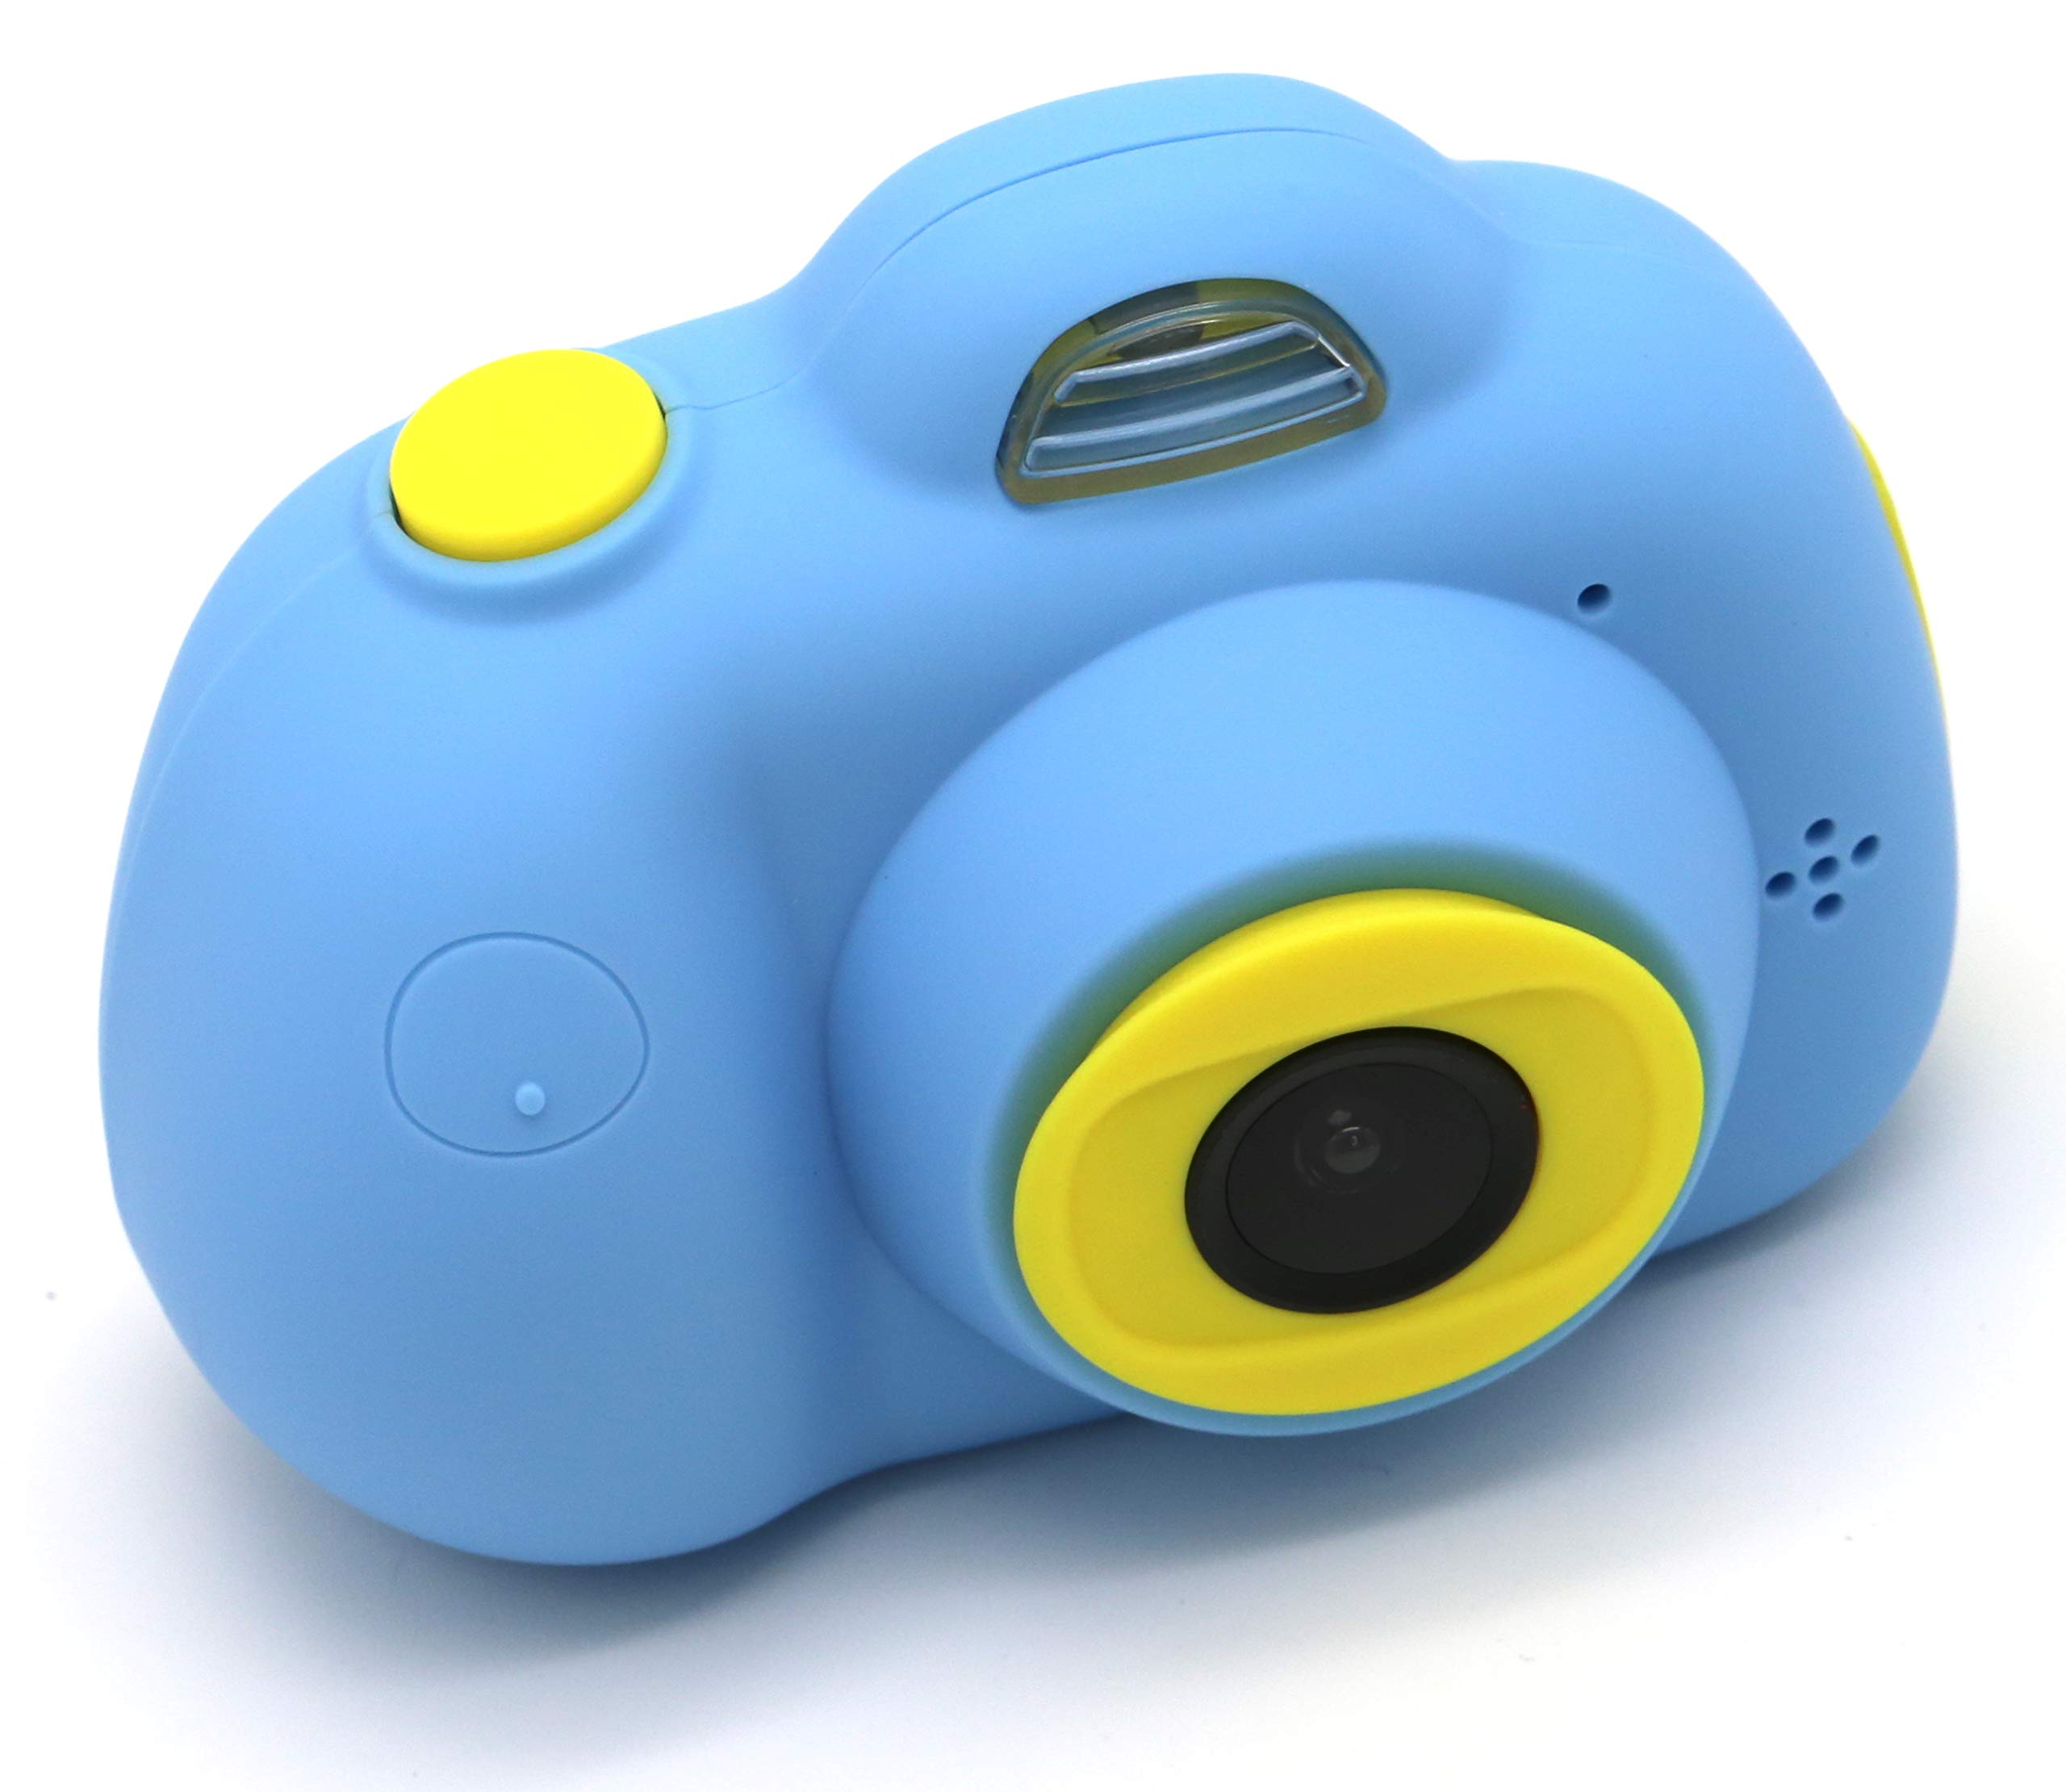 YOYOCOCO Camera for Kids,Film Camera Selfie Camera with Soft Silicone Shell for Outdoor Play,Kids Camera Toy Camera for 3-10 Year Old Girls and Boys(16GB TF Card Included)(Blue) by YOYOCOCO (Image #9)